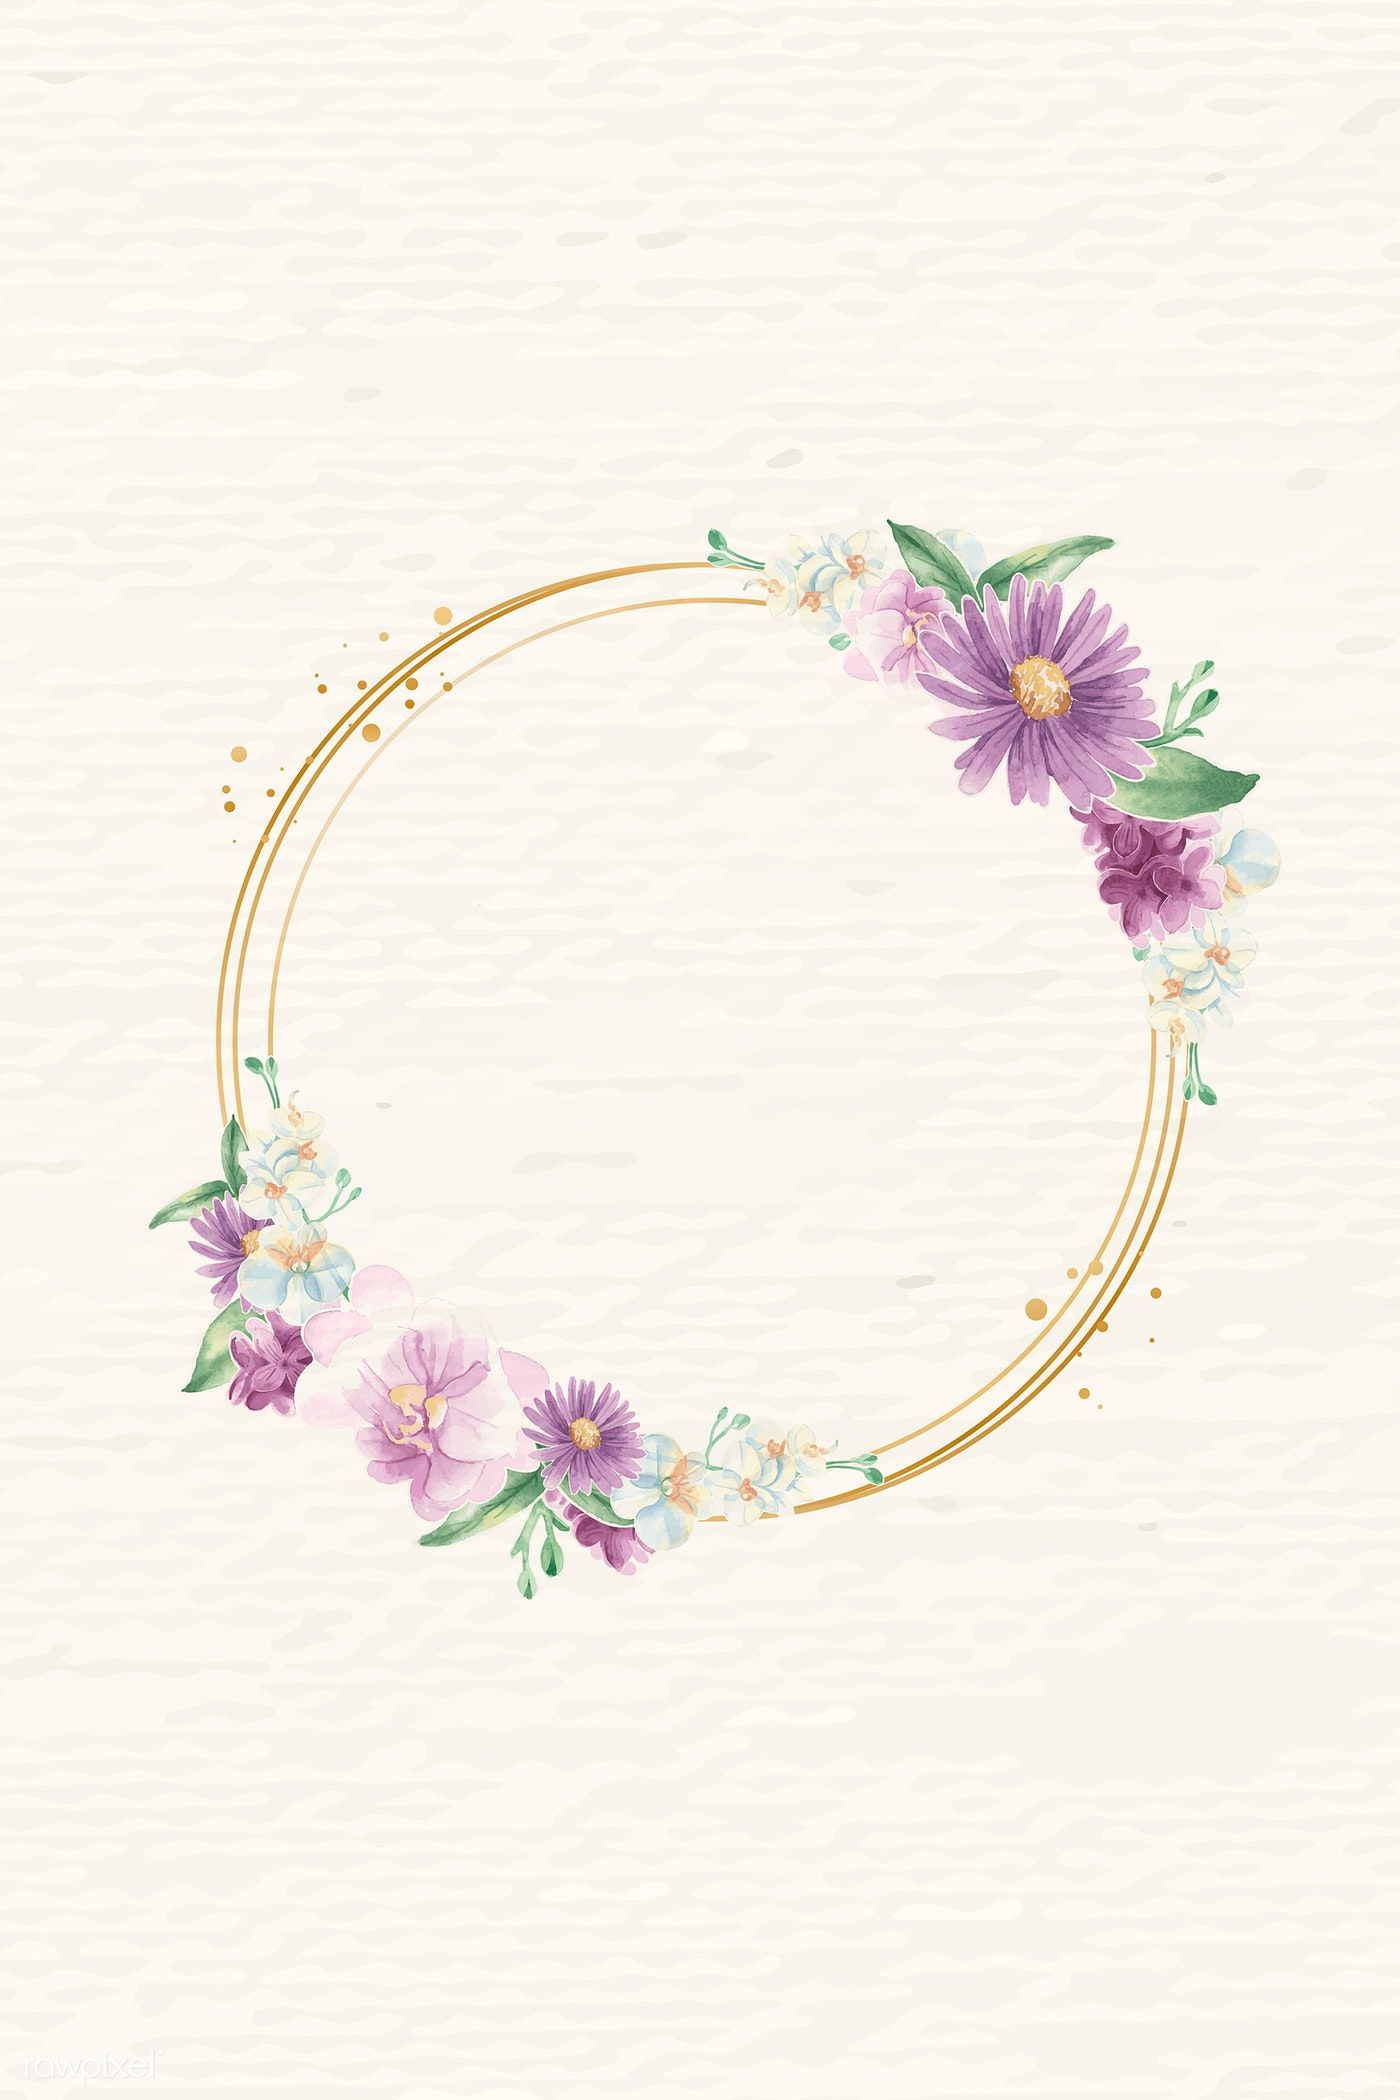 Download Premium Vector Of Round Gold Flower Frame Vector 937096 Flower Frame Flower Illustration Gold Flowers